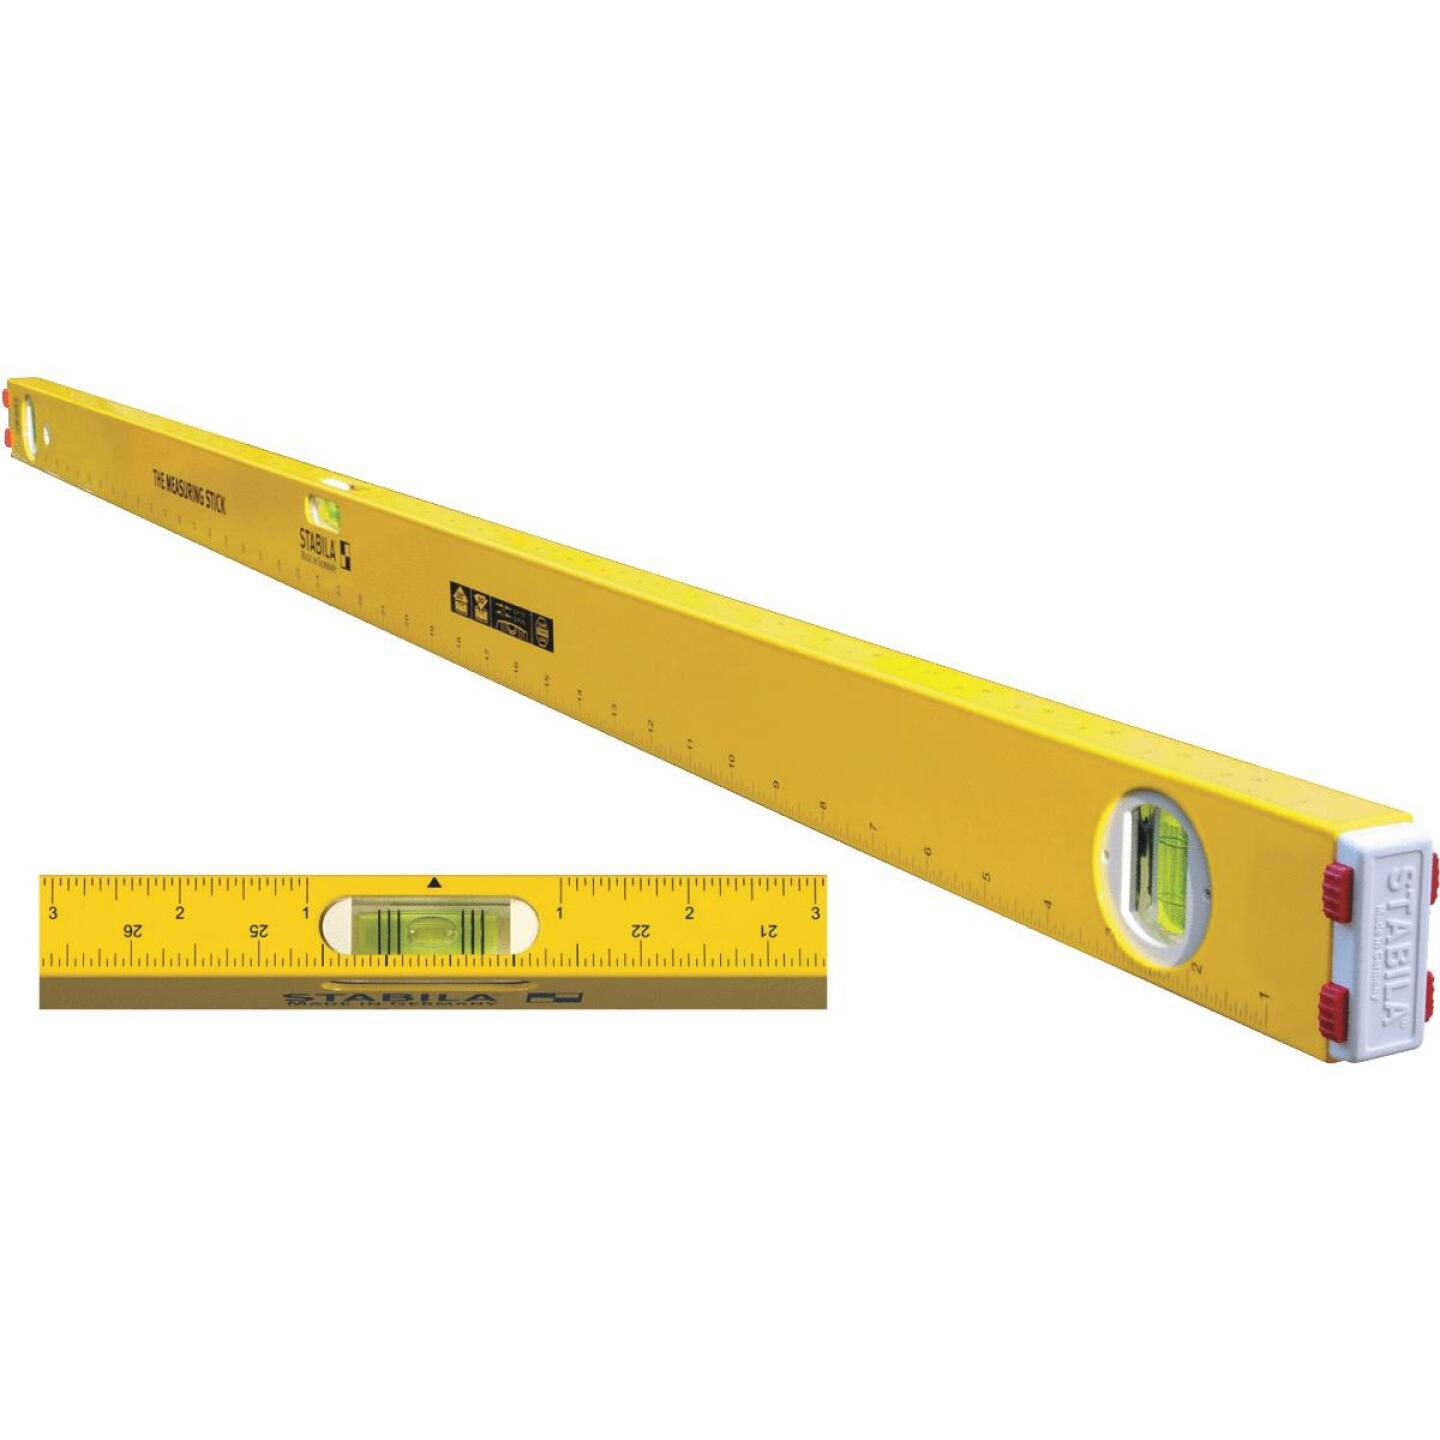 Stabila Measuring Stick 24 In. Aluminum Box Level Image 1